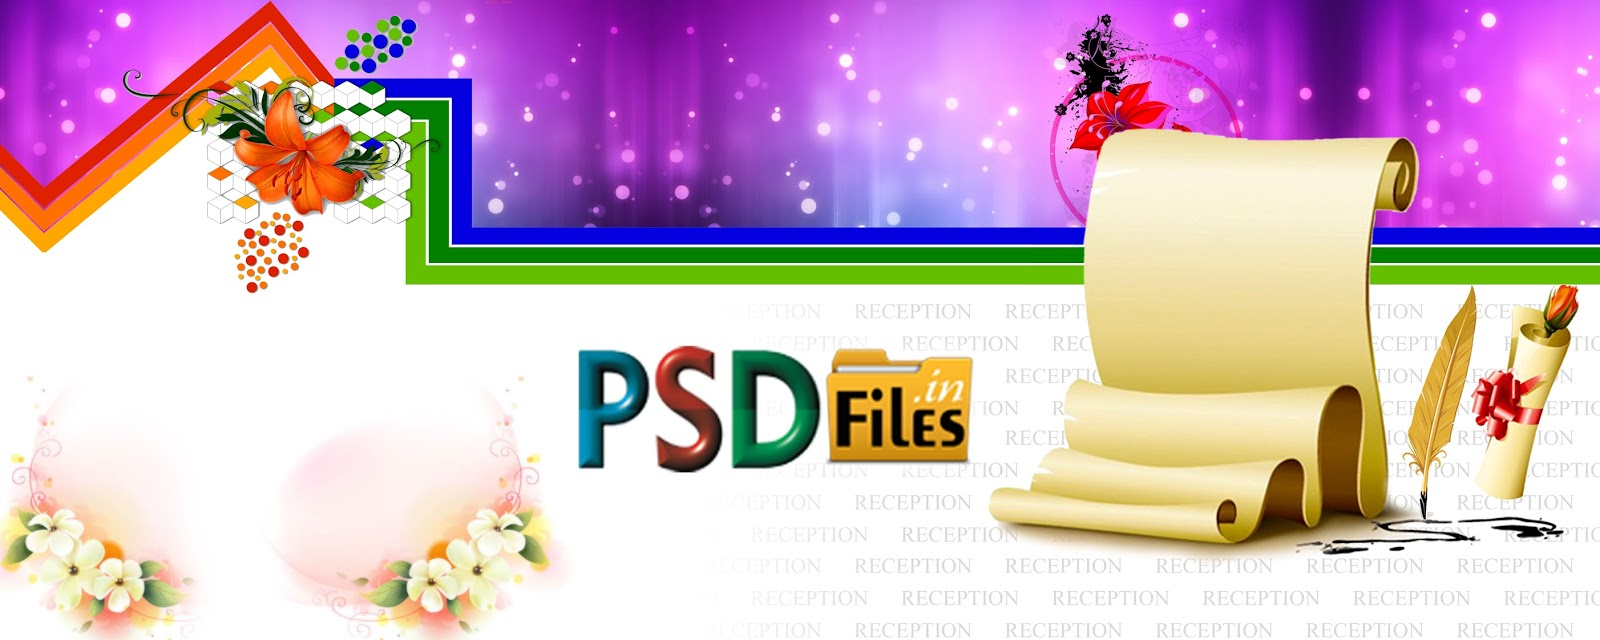 ... studio backgrounds psd free downloads,12x36 album psd background free